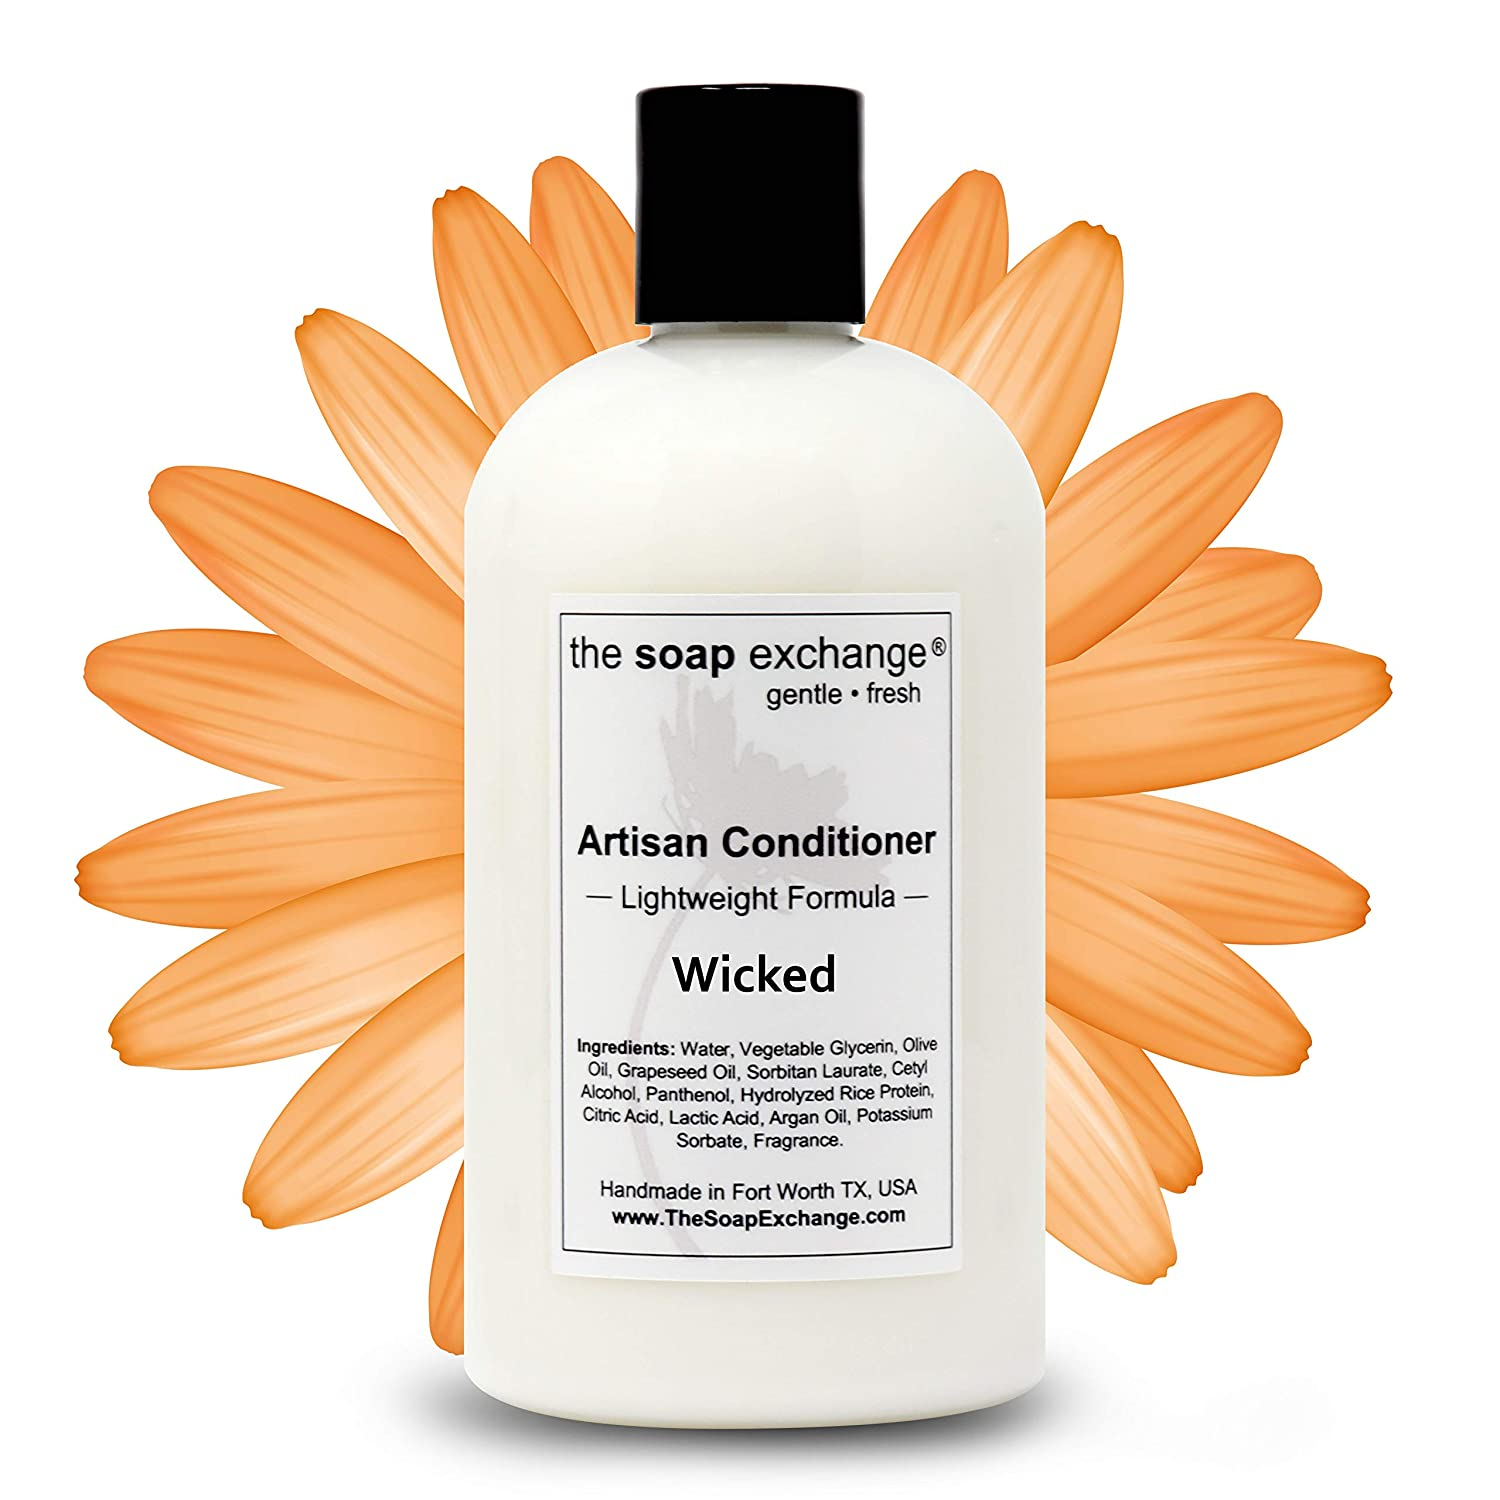 The Soap Exchange Hair Conditioner - Wicked Scent - Hand Crafted 12 fl oz / 354 ml Natural Artisan Hair Care, Sulfate & Paraben Free, Nourish, Moisturize, Protect. Made in the USA.